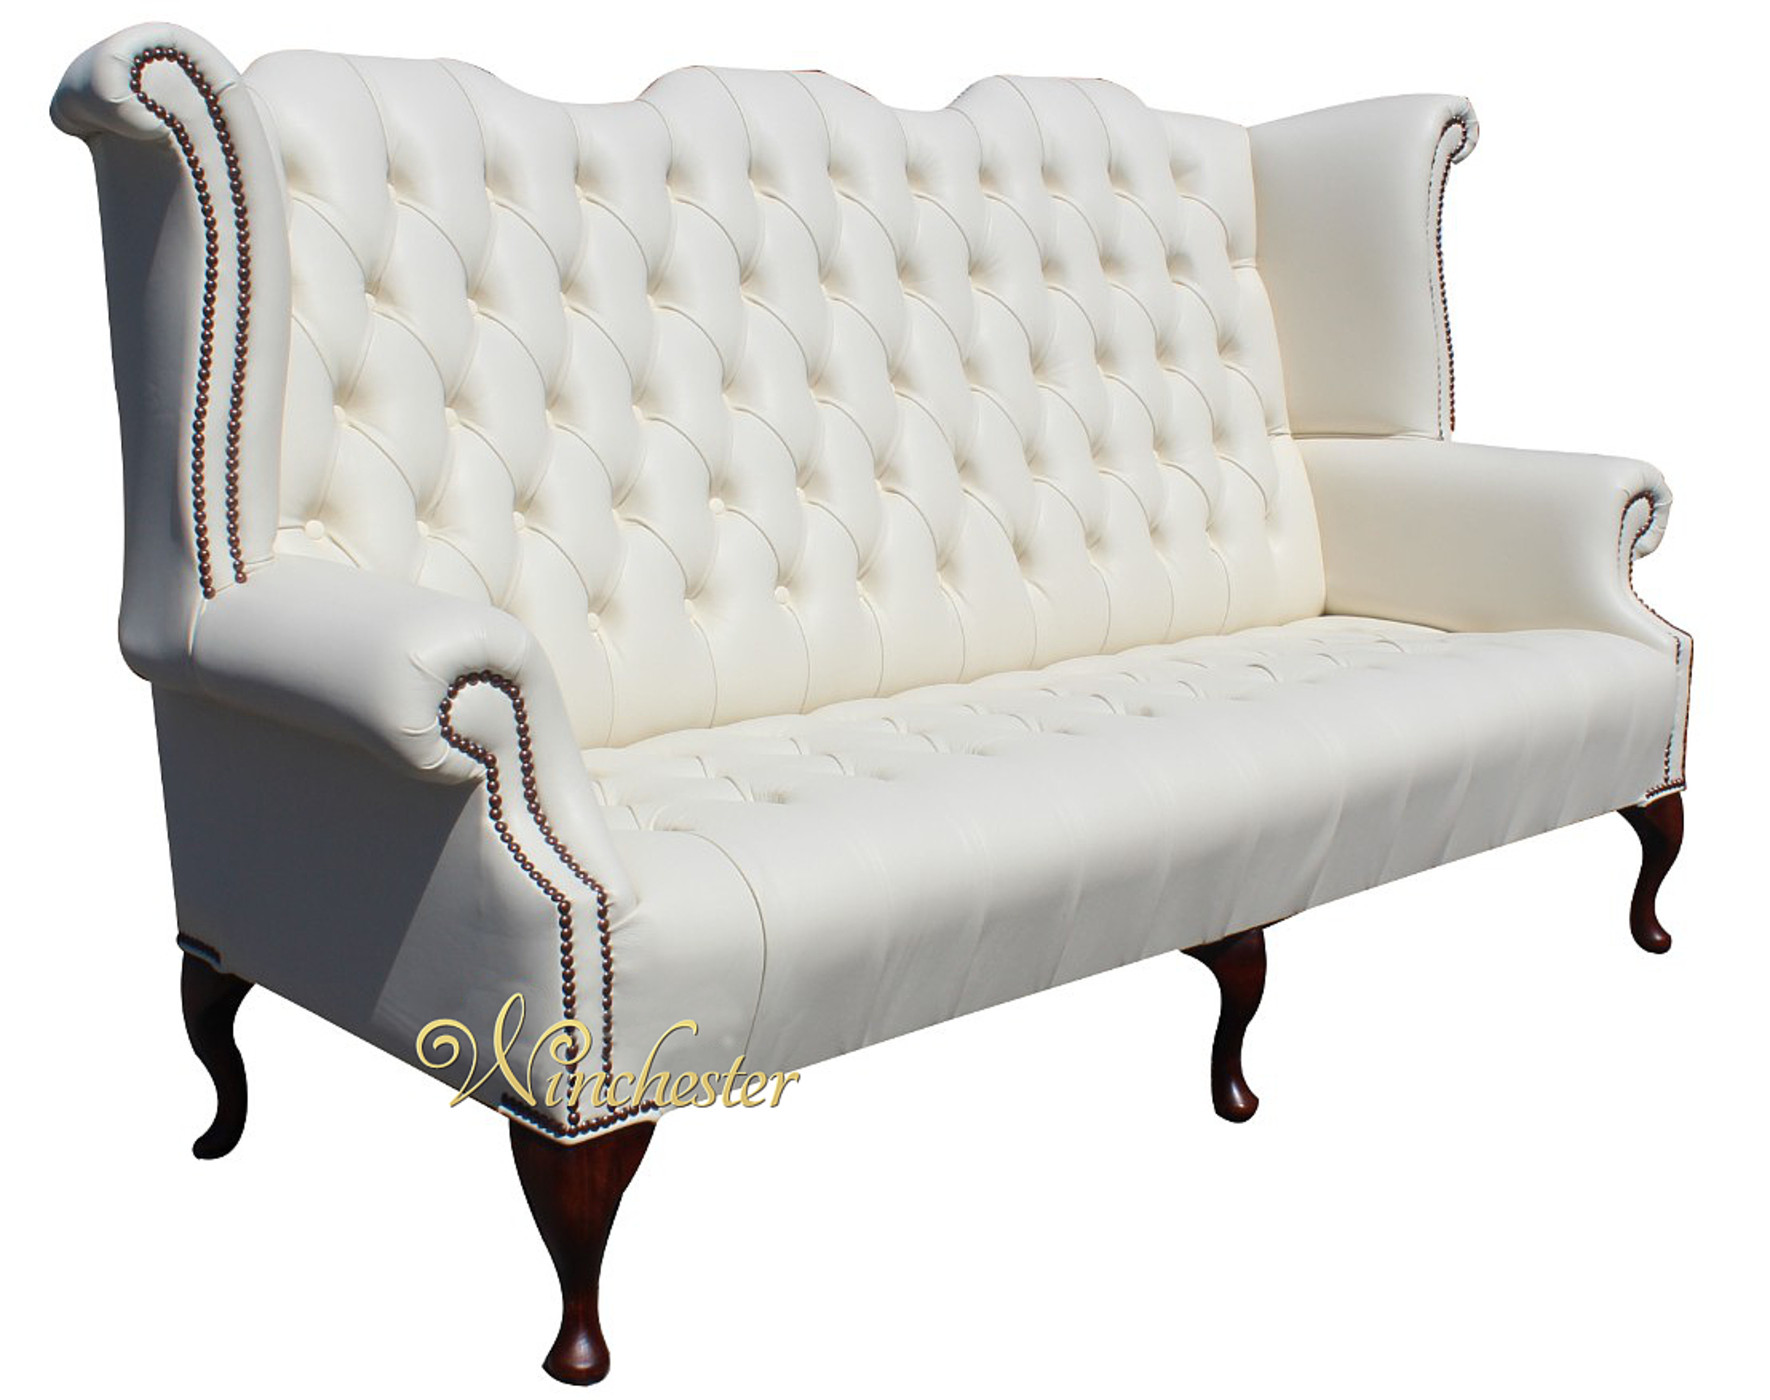 Chesterfield Newby 3 Seater Queen Anne High Back Wing Chair Sofa